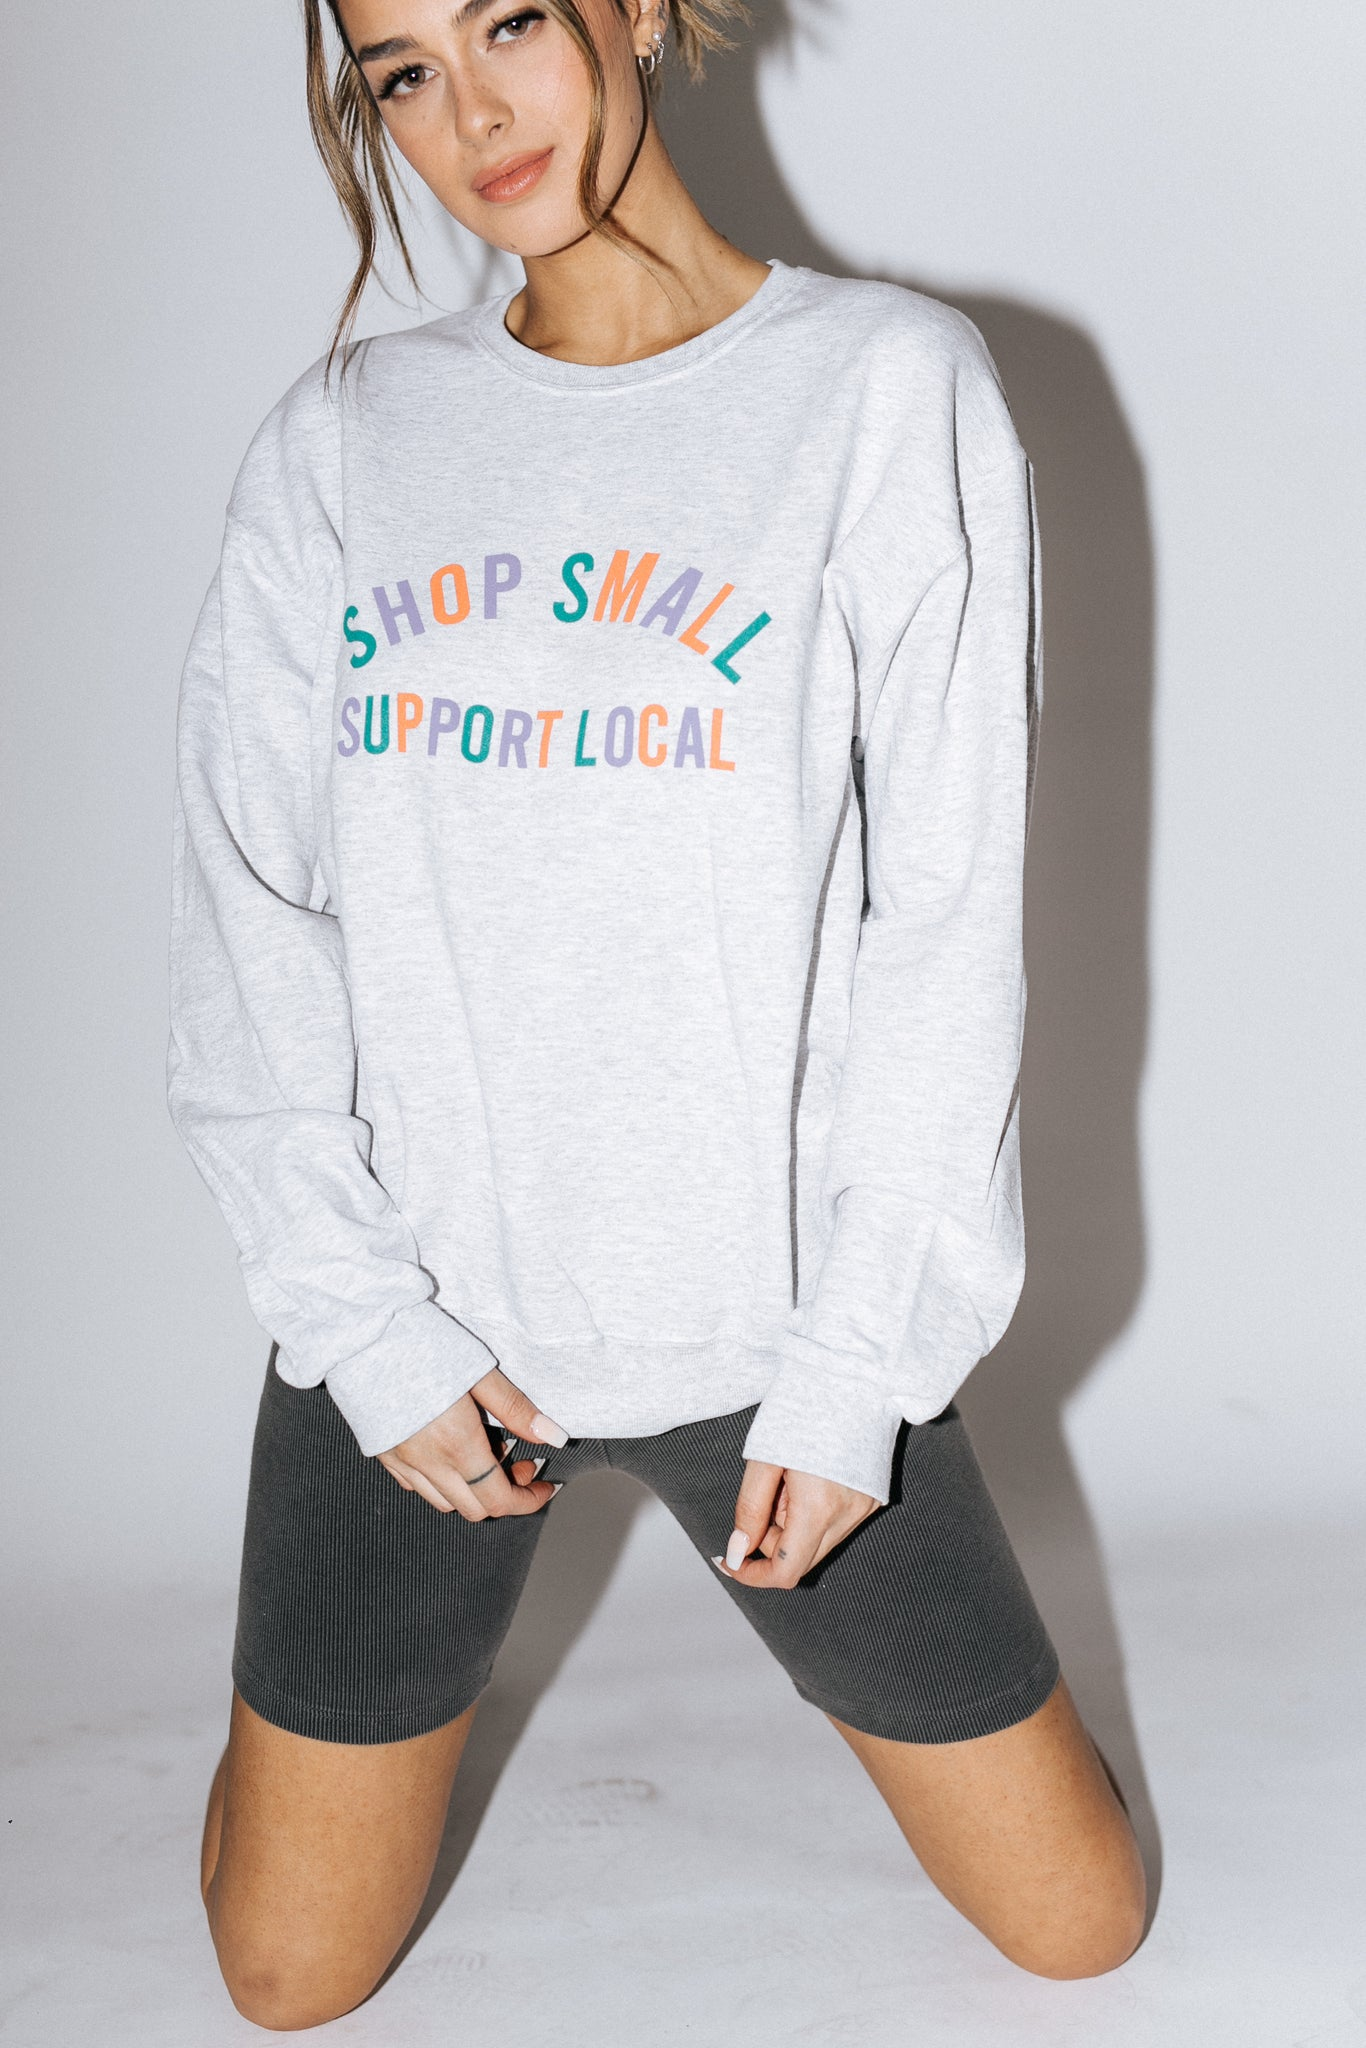 The Shop Local Sweater